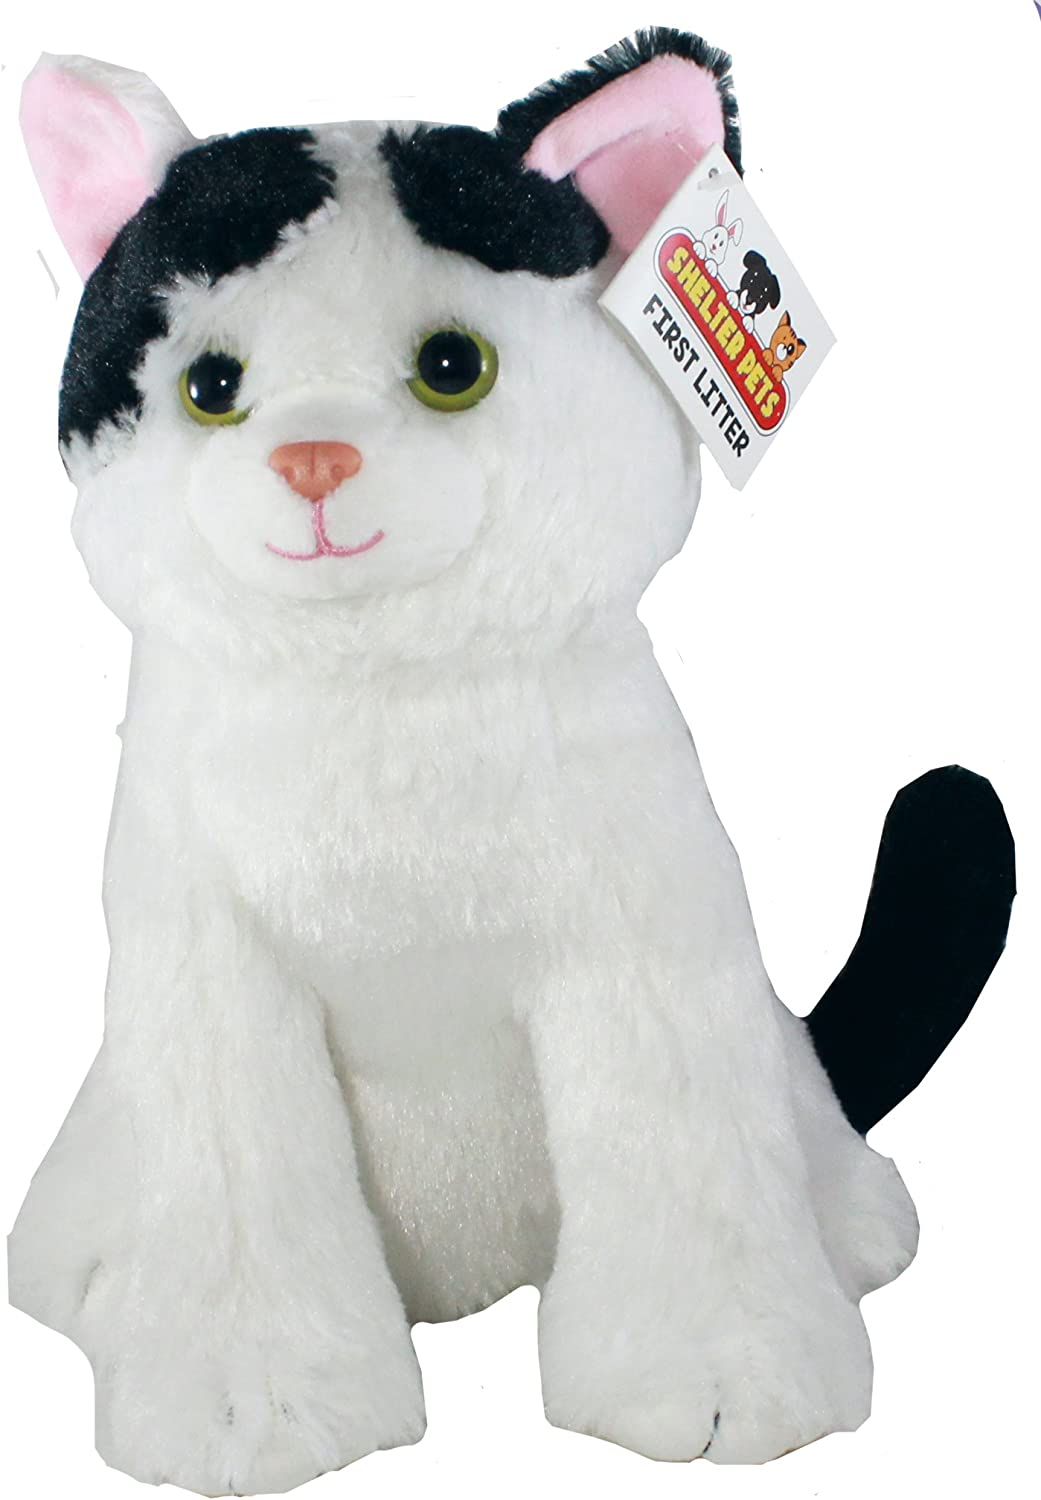 Shelter Pets Series One  Nibbles The Cat  10  White and Black Kitten Plush Toy Stuffed Animal  Based on RealLife Adopted Pets  Benefiting The Animal Shelters They were Adopted from